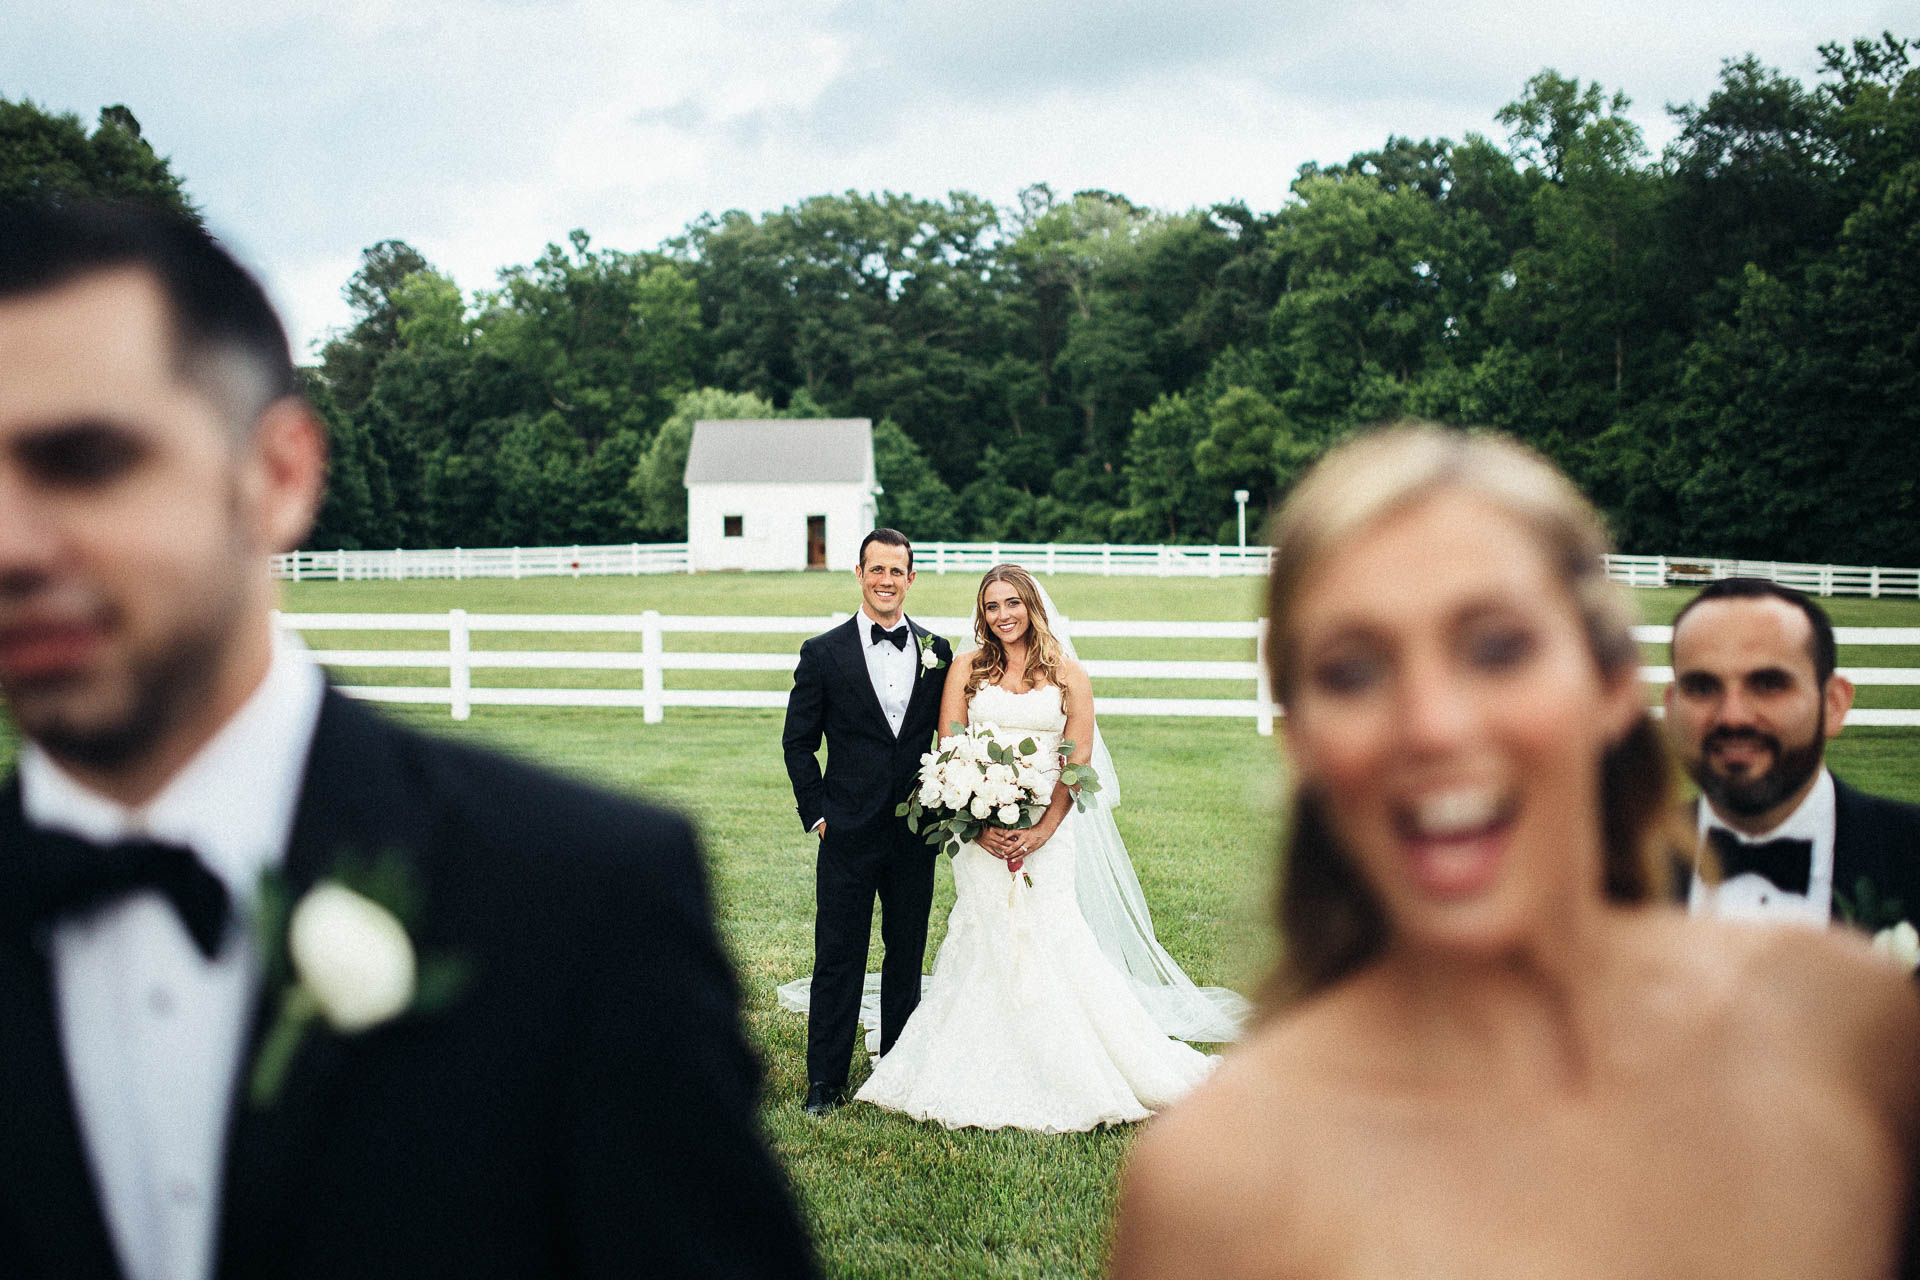 Shawna_Josh_Wedding_Easton_Maryland_JeanLaurentGaudy_097